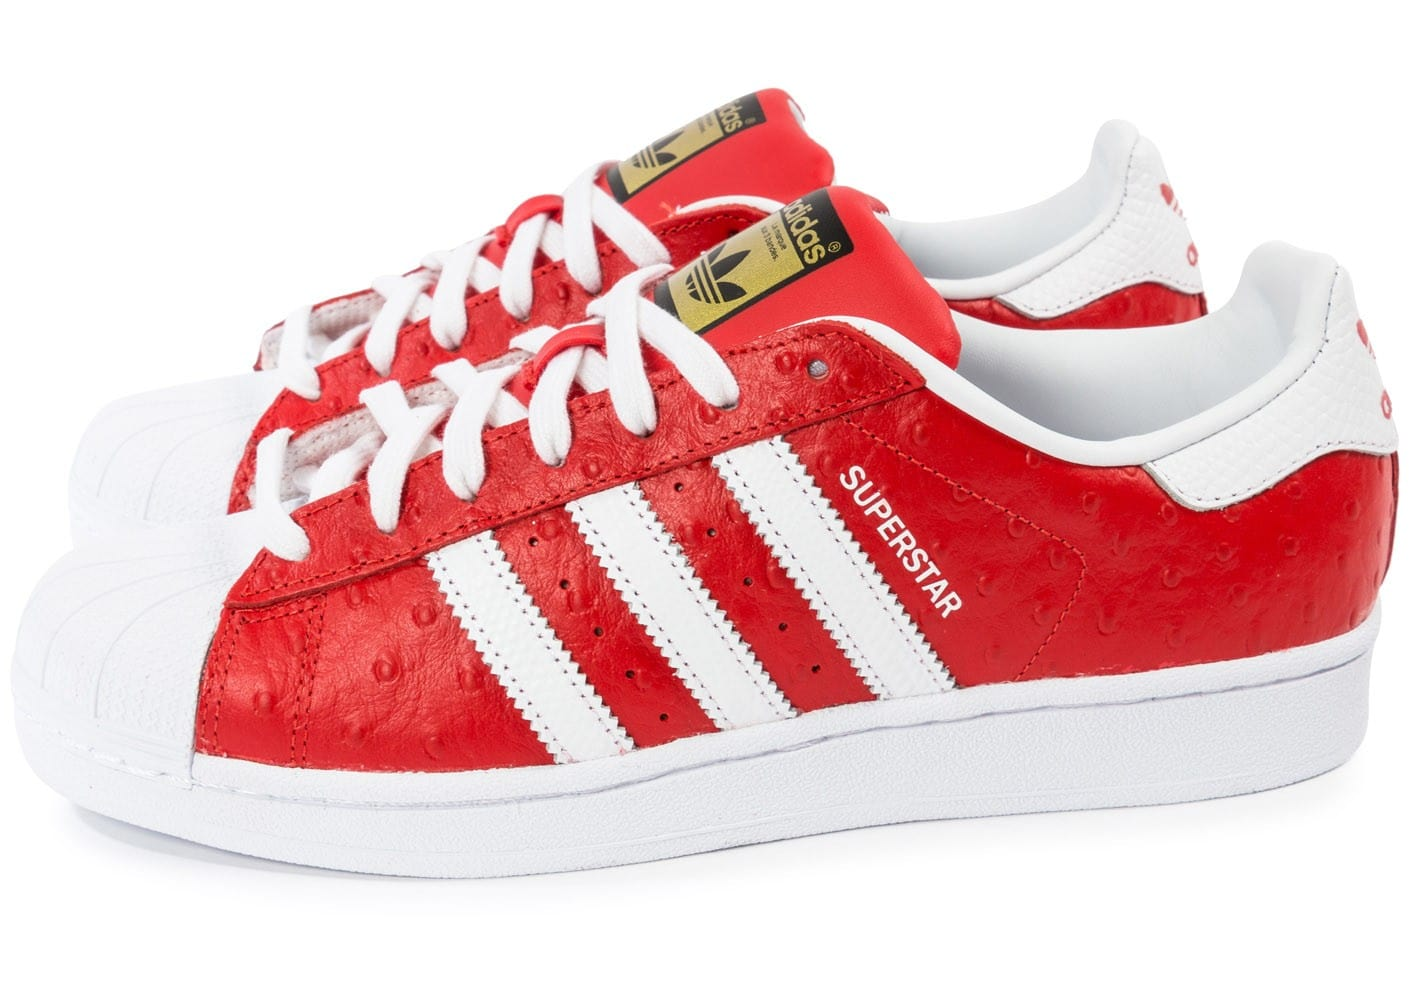 f03785990 adidas superstar animal rouge,Homme 2017 Adidas Superstar Animal ...